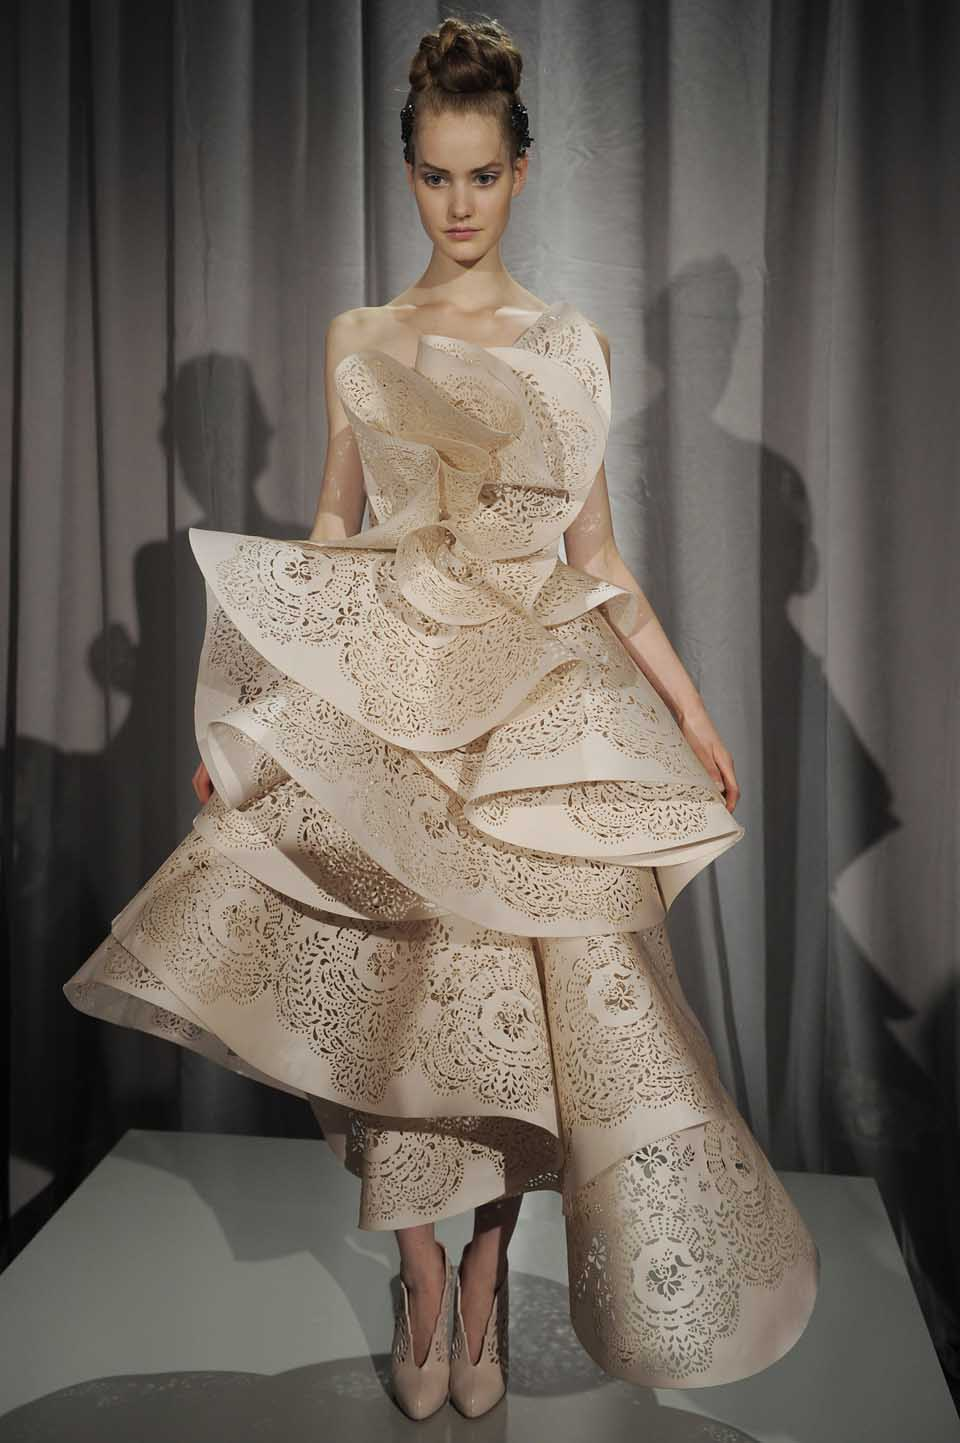 585f4b9fa54990 What you need to know about laser-cut clothing